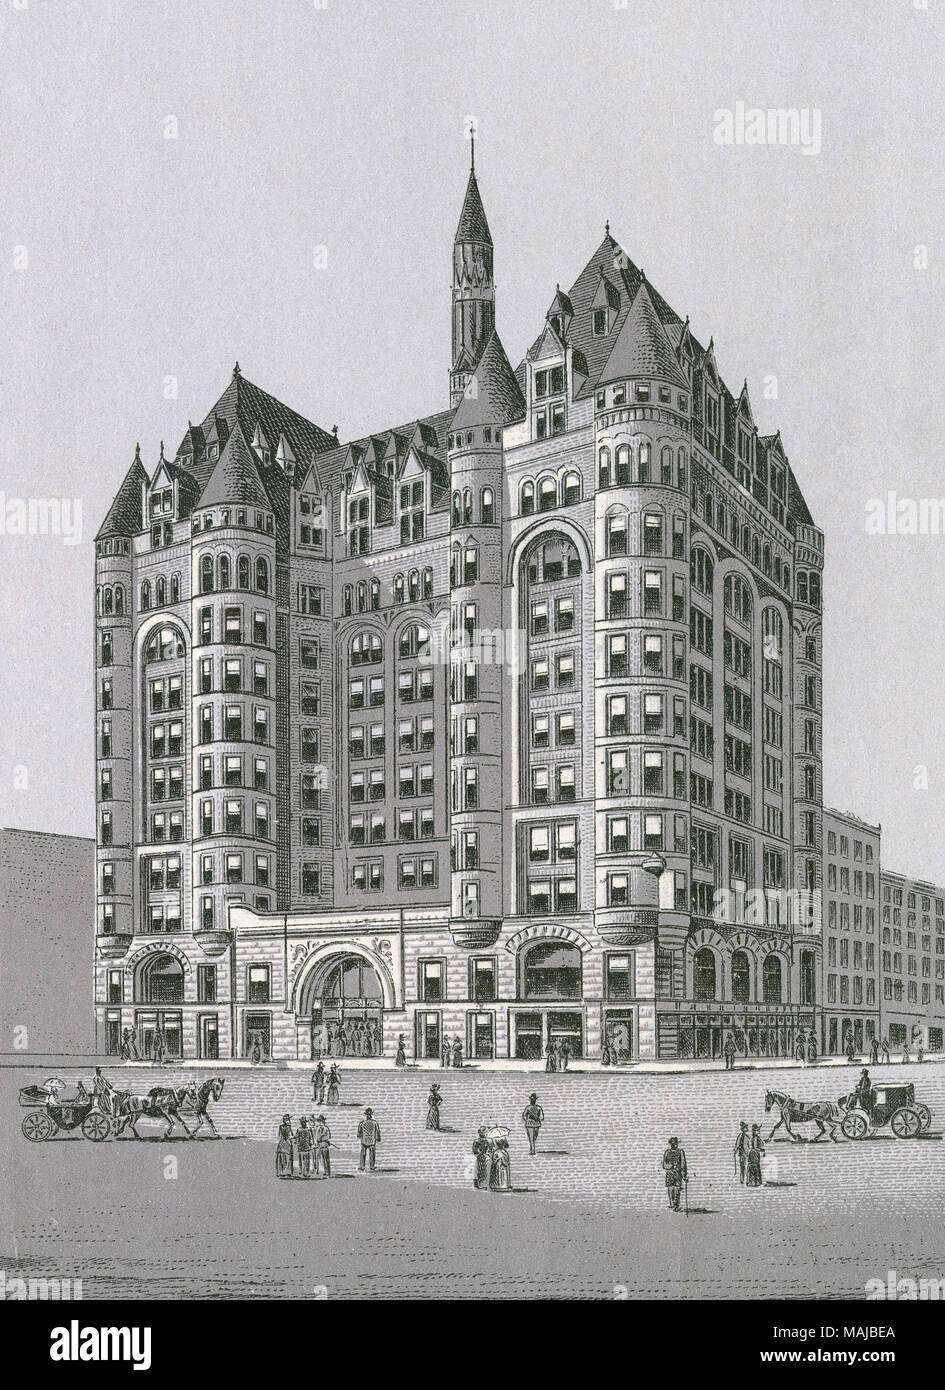 Antique c1890 monochromatic print from a souvenir album, showing the Woman's Temple building at the southwest corner of Monroe and LaSalle streets in Chicago, Illinois. Printed with the Glaser/Frey lithographic process, a multi-stone lithographic process developed in Germany. - Stock Image